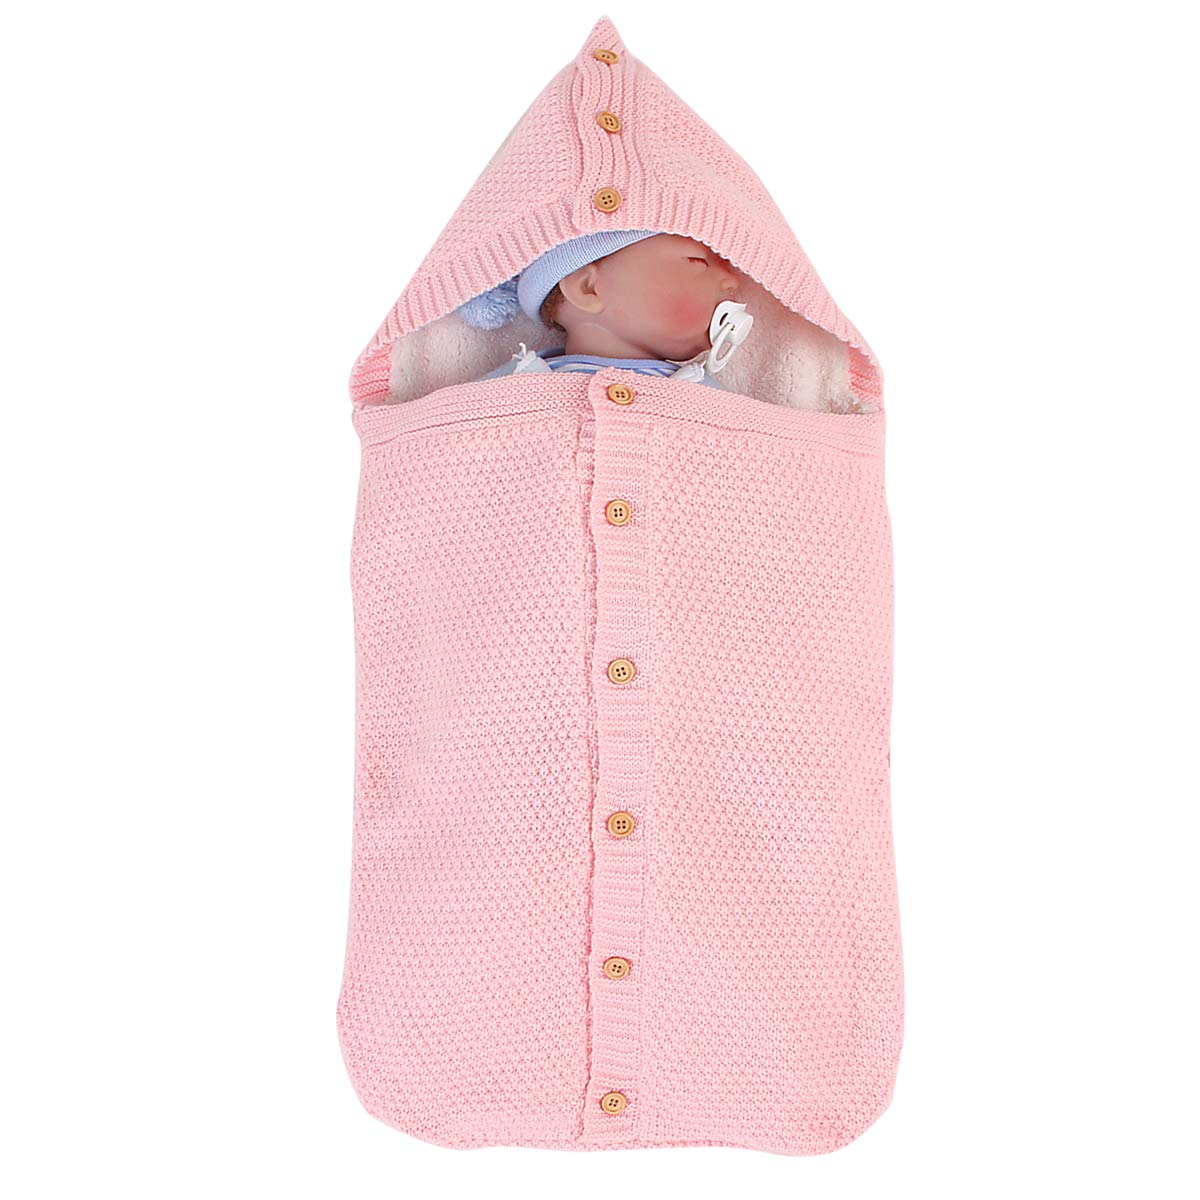 Owlike Newborn Baby Knit Sleeping Bag Stroller Wrap Toddler Swaddle Thick Warm Sleep Bag